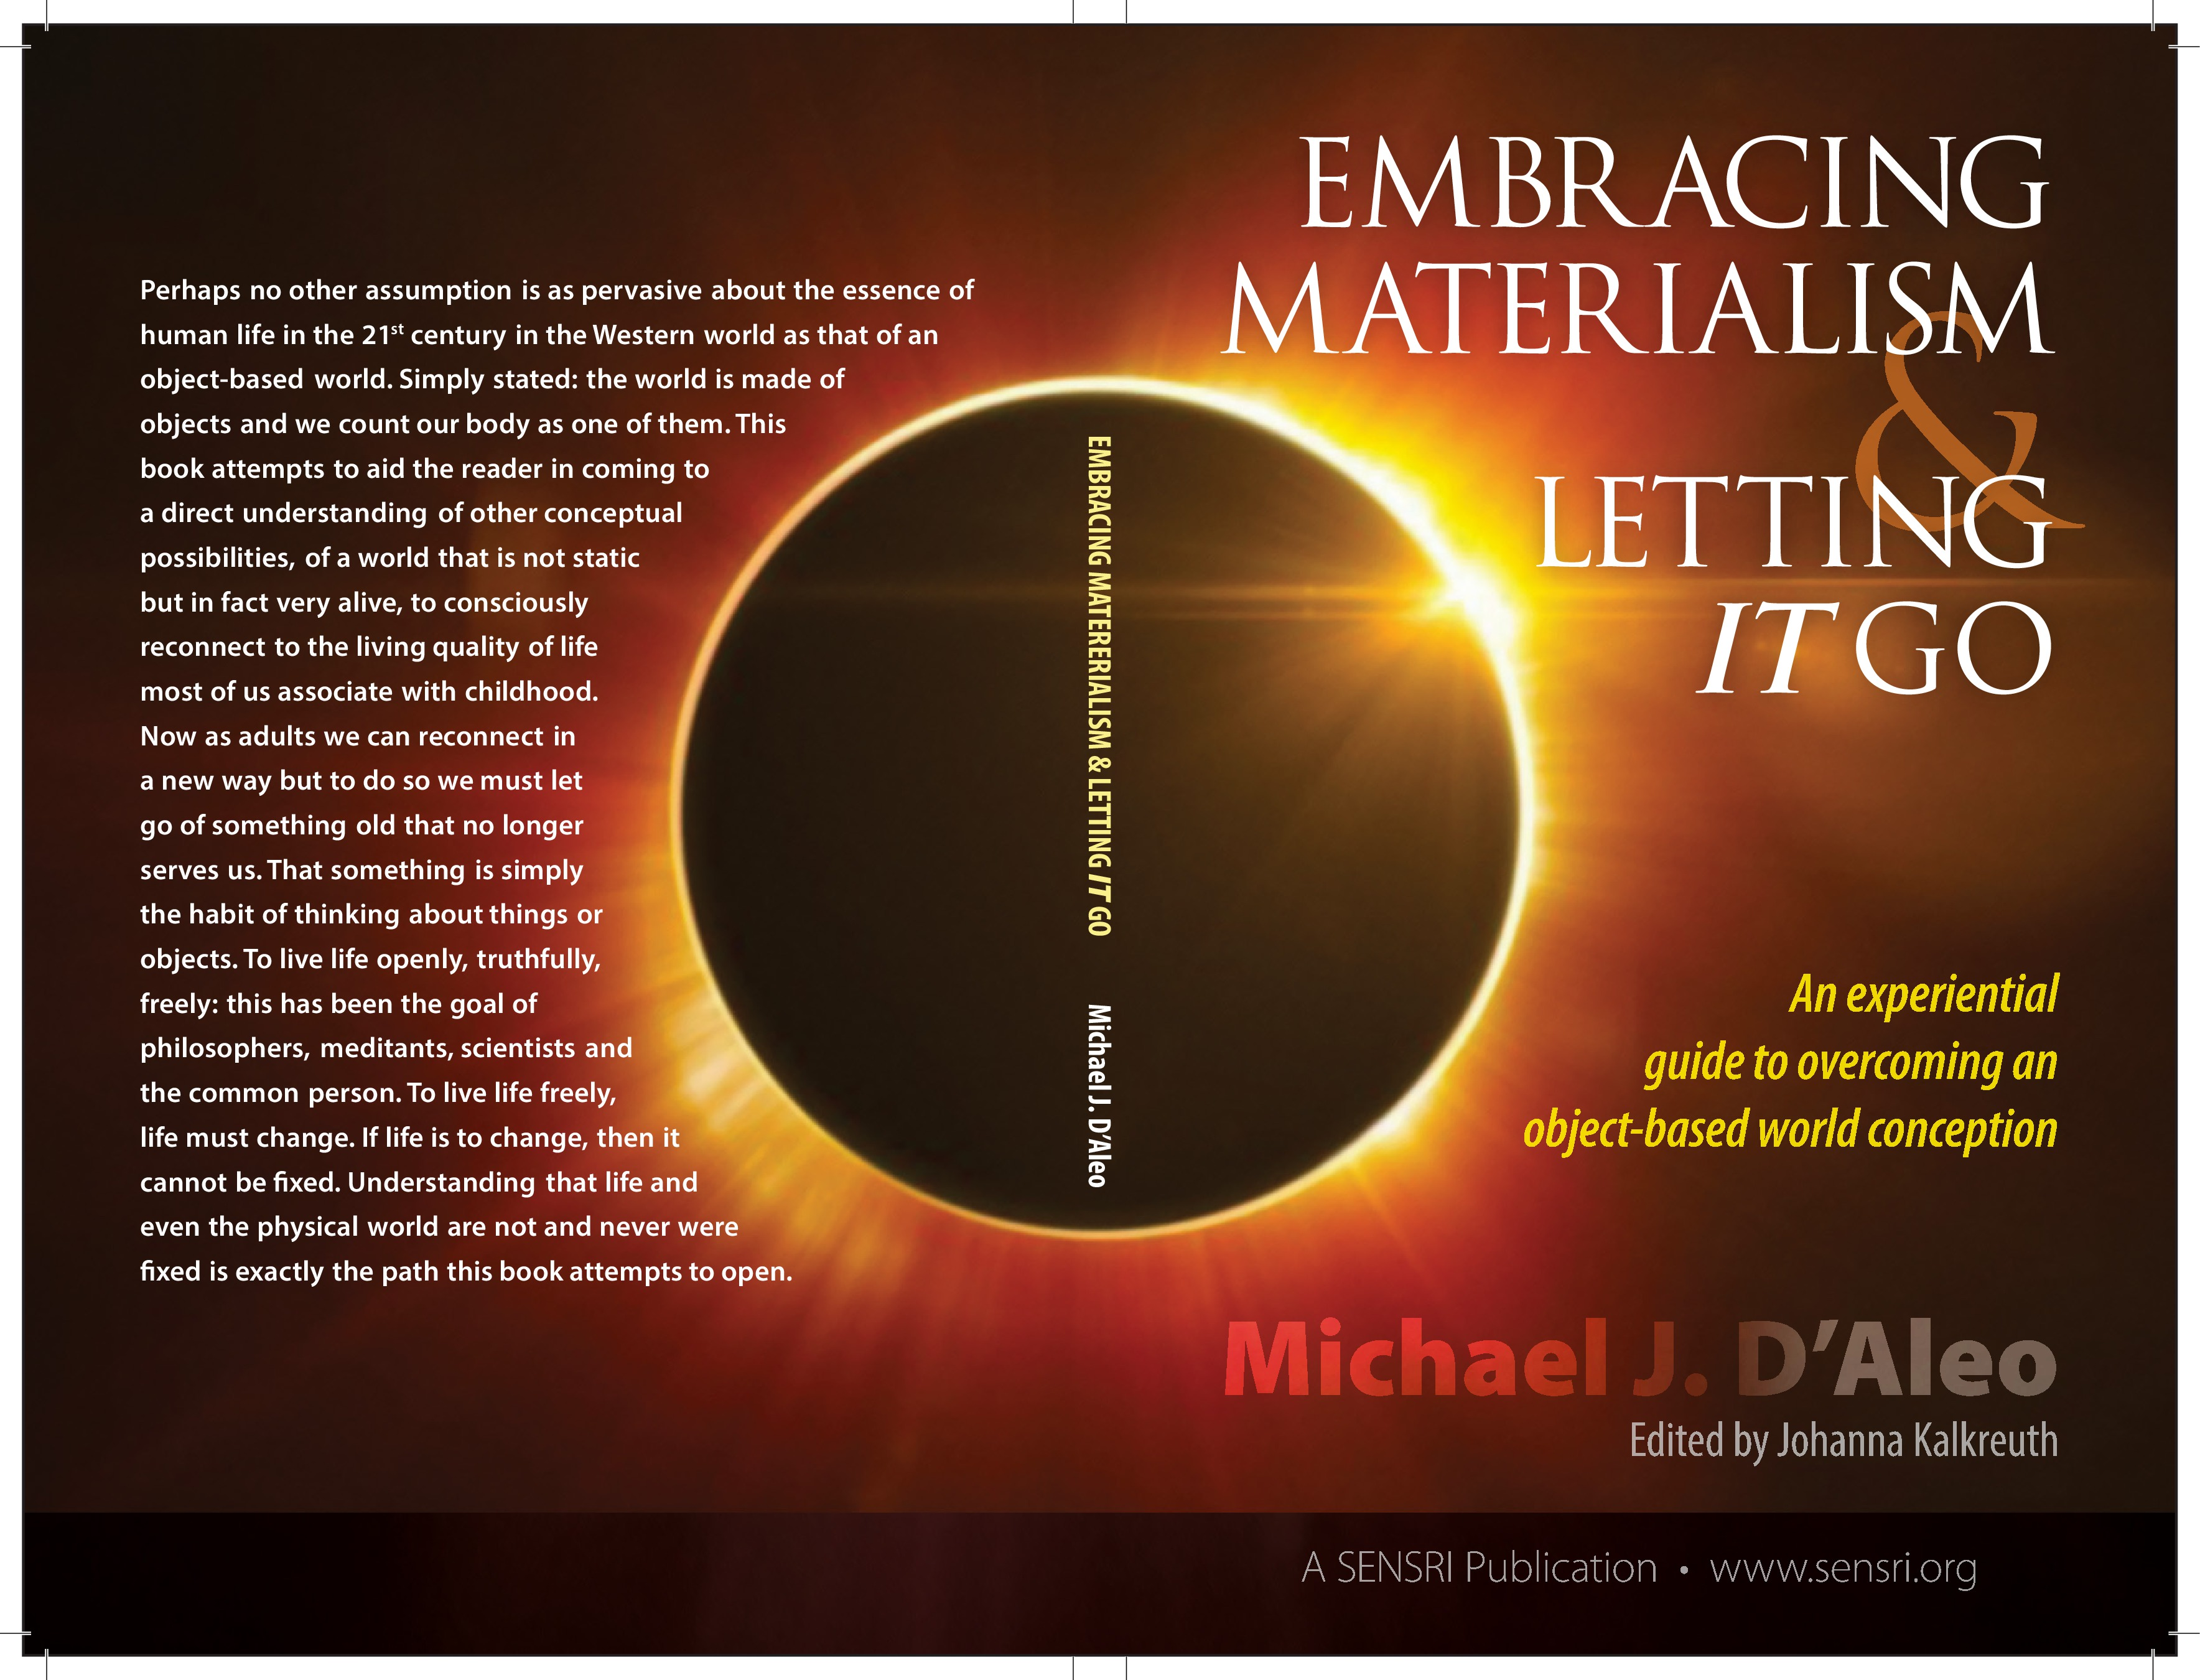 Embracing Materialism and Letting It Go: An experiential guide to overcoming an object-based world conception by Michael J. D'Aleo